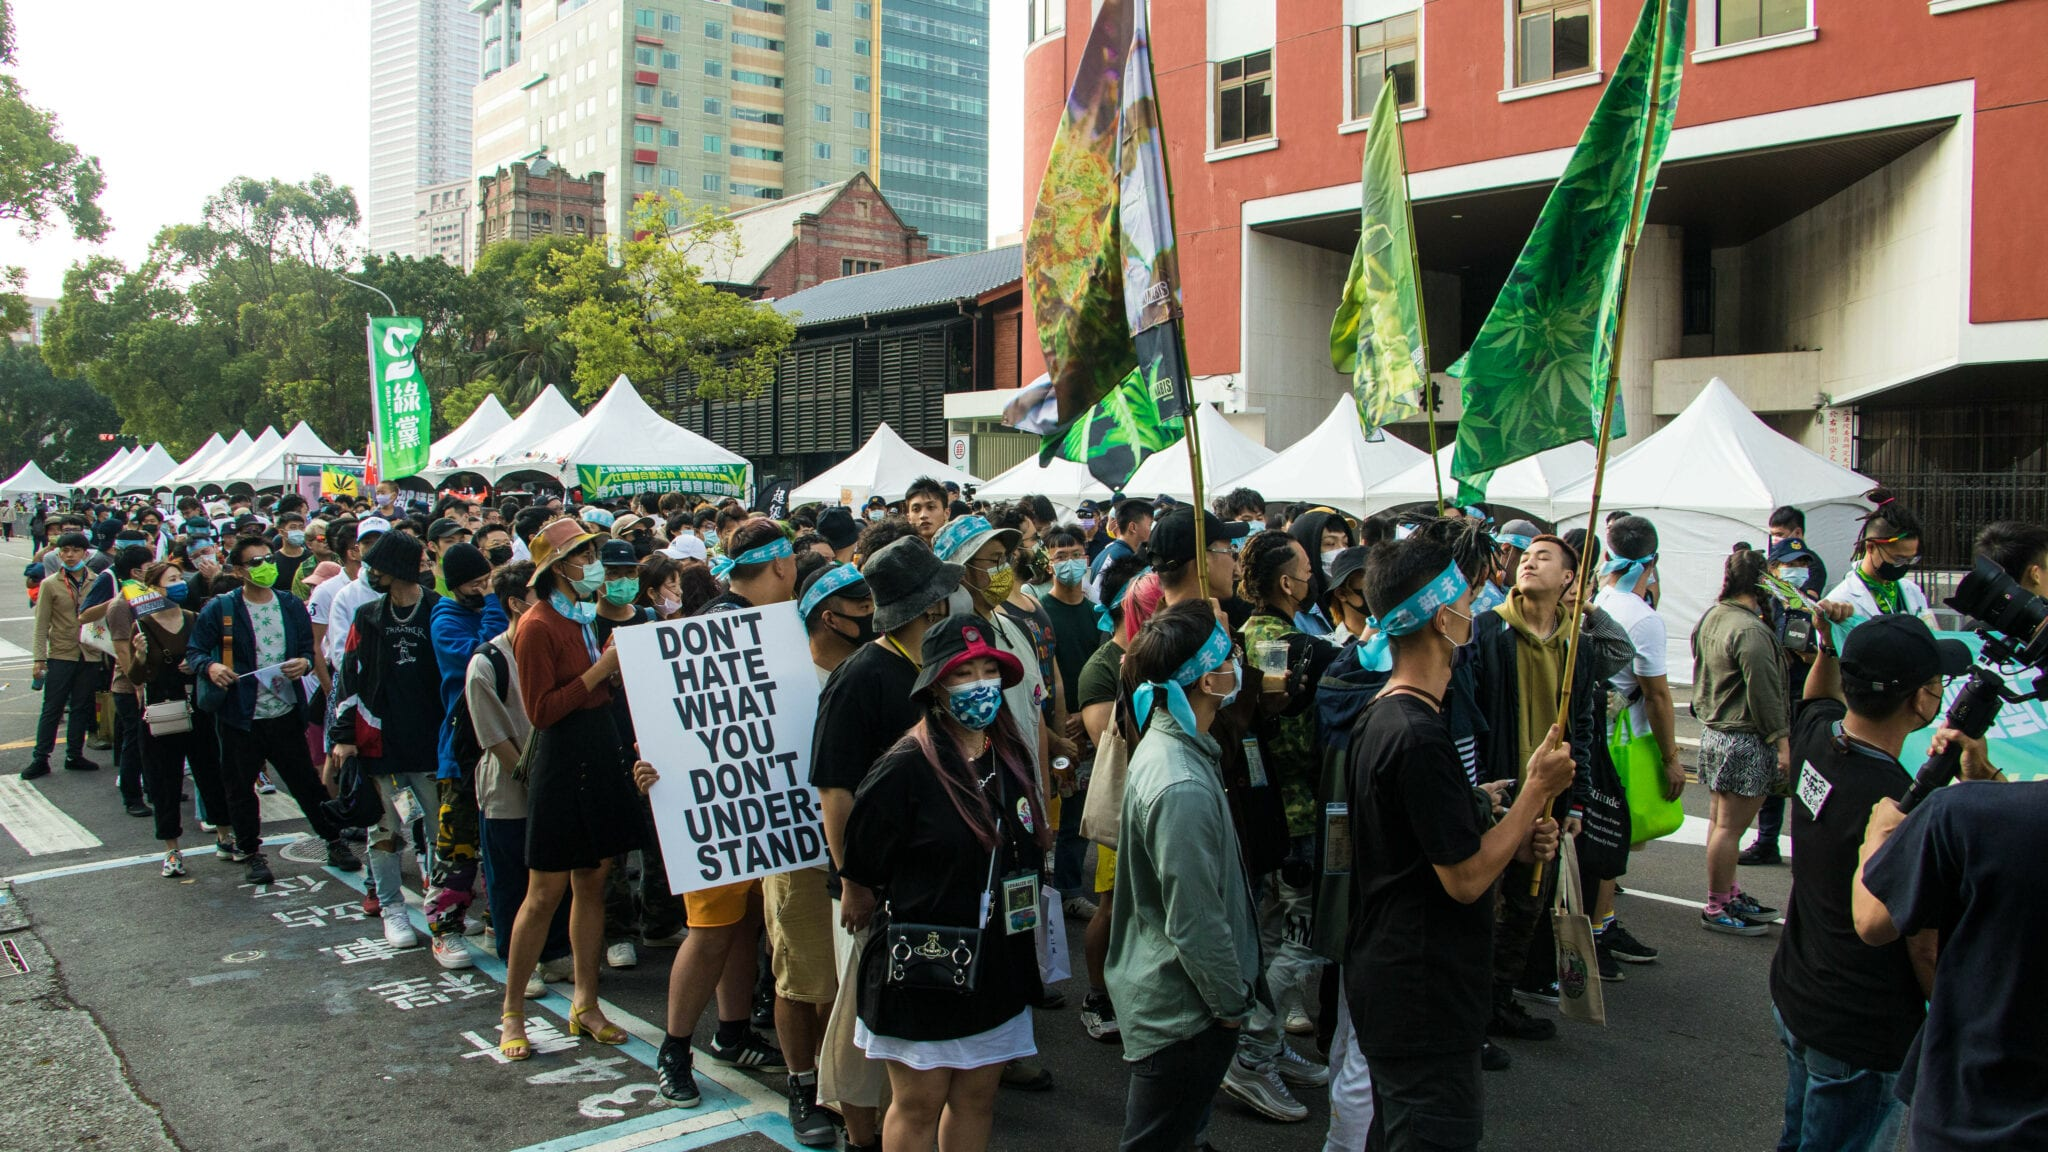 Activists and experts push for legal cannabis in Taiwan - crowd